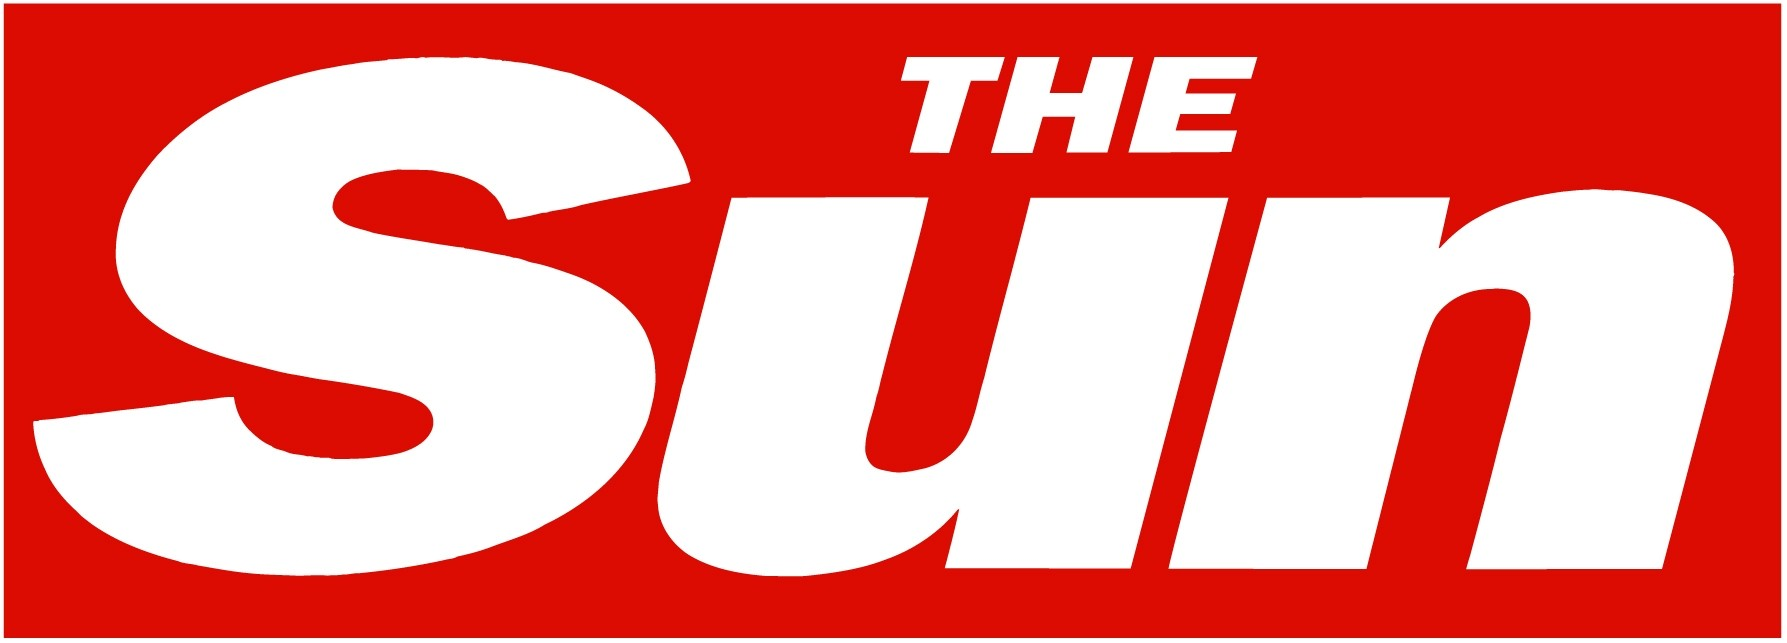 Smile On Fridays secured coverage in The Sun for Tenable